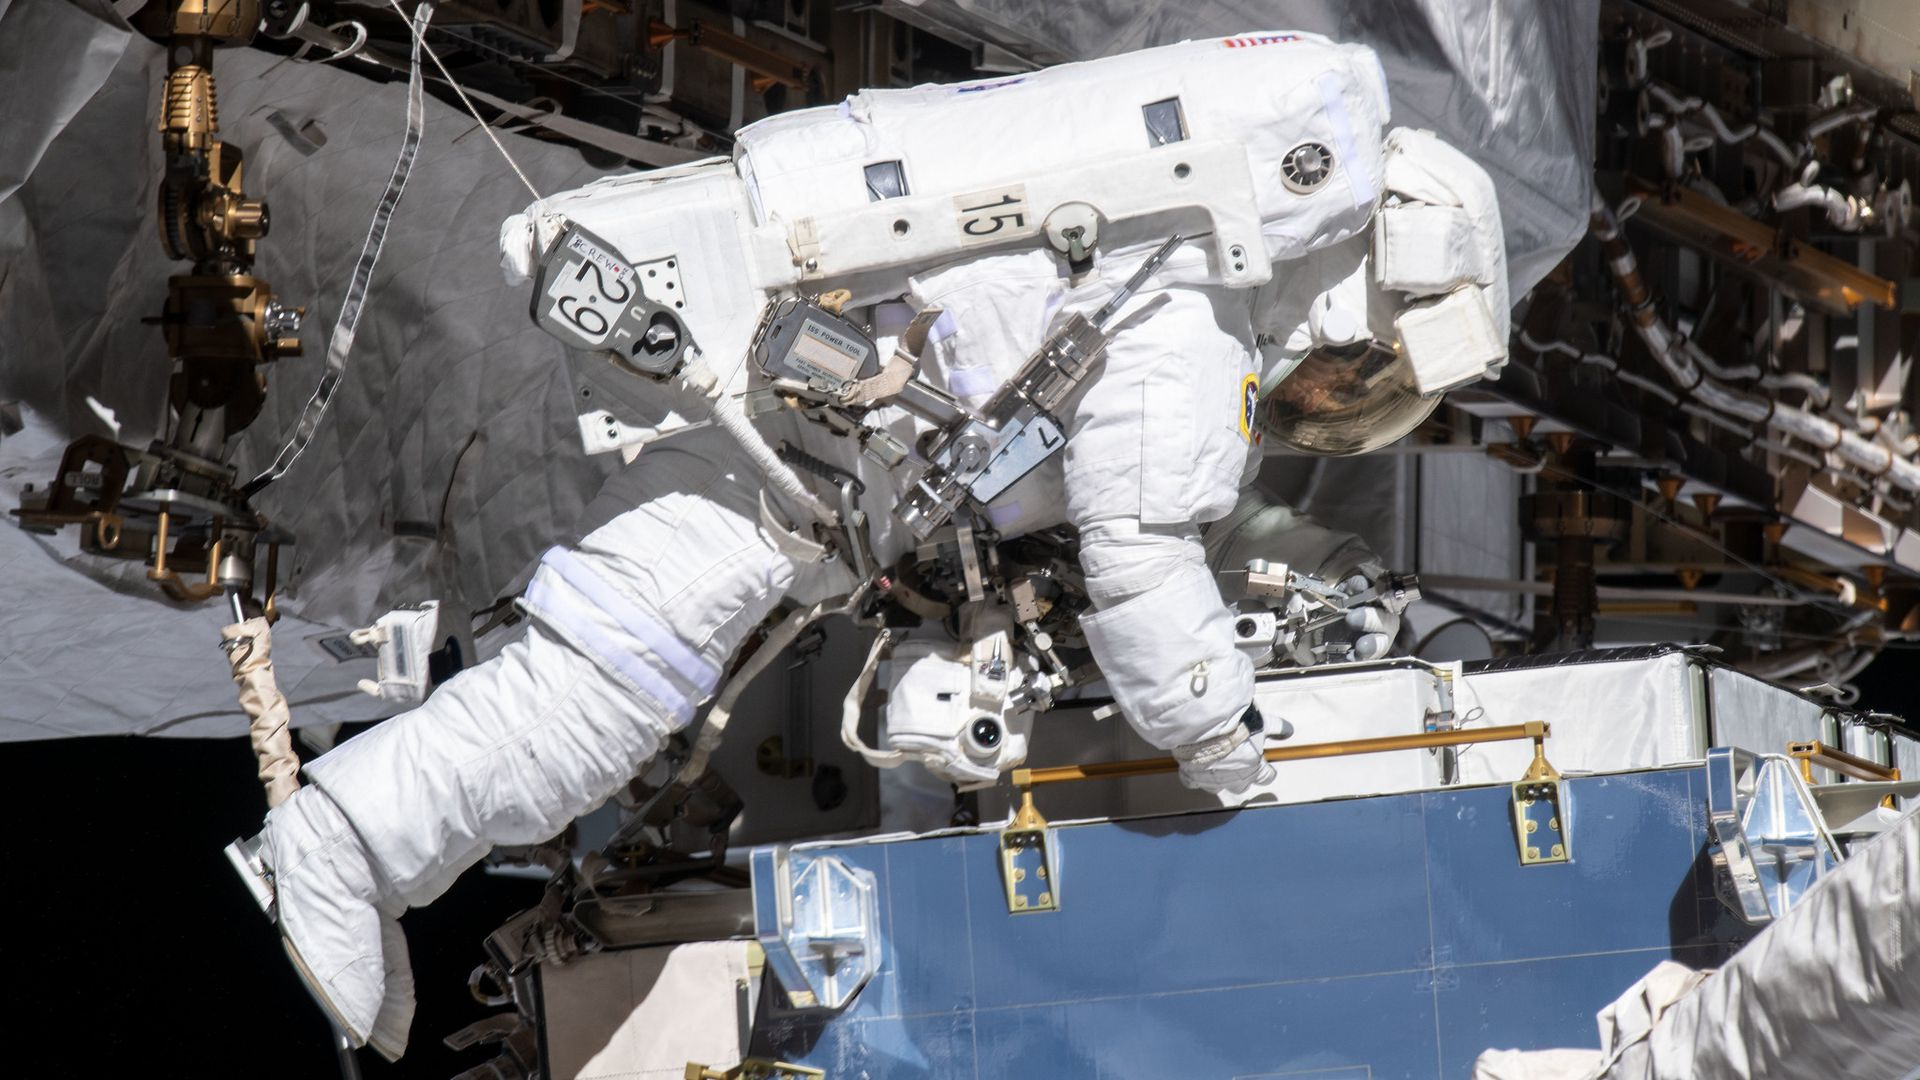 An astronaut working on the outside of the International Space Station